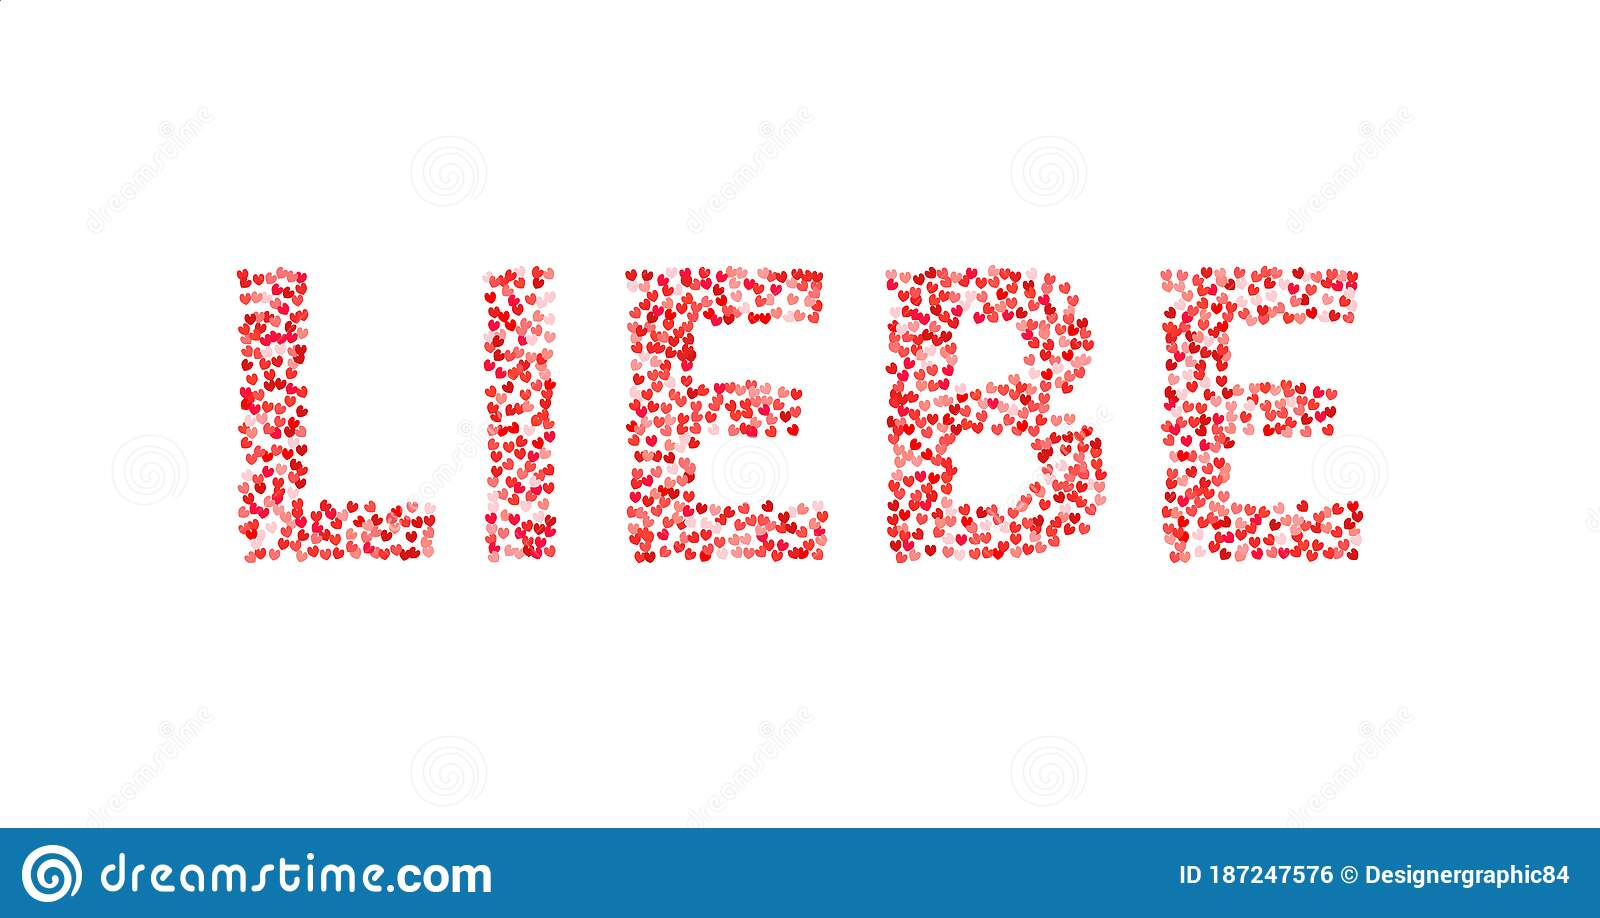 The Word Liebe Made Of Little Hearts Shades Of Red And Pink Love In German Valentine S Day Typography Poster Vector Stock Vector Illustration Of February Letter 187247576